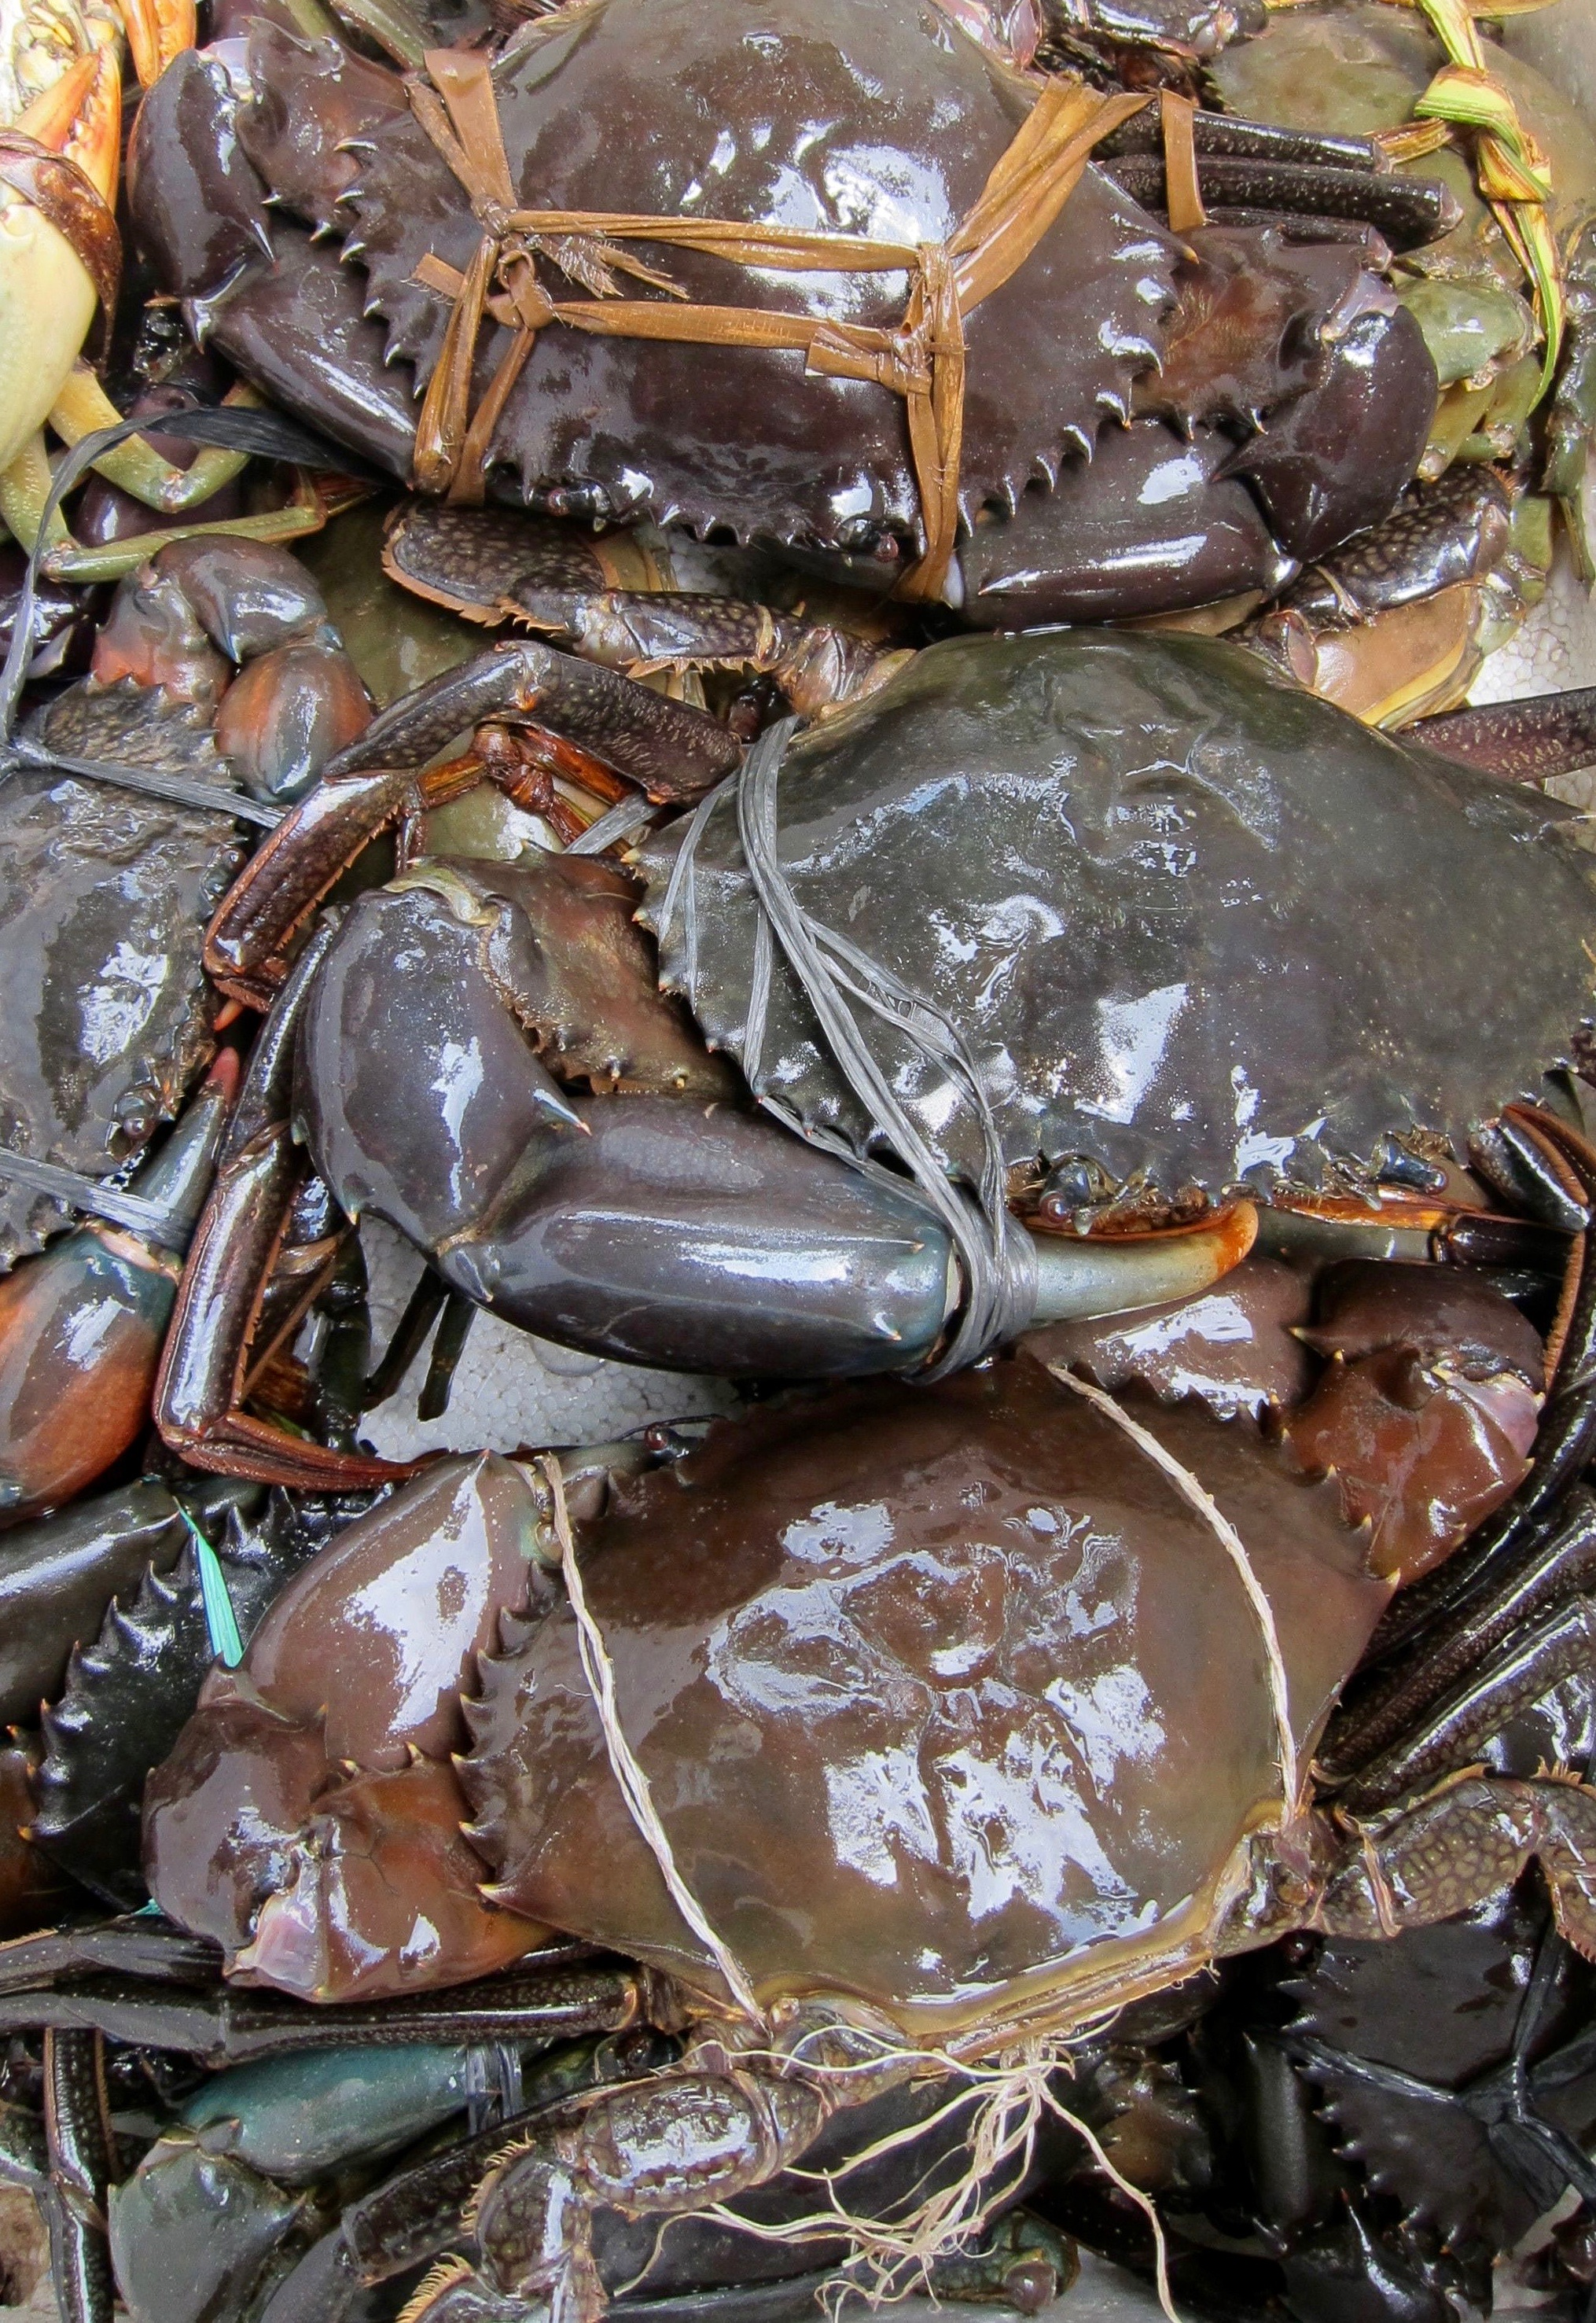 Crabs bought from the live market by students at Amitabha Buddhist Centerin Singapore await liberation back to the ocean. They are sold tied upand packed together in cramped conditionsto be boiled alive and eaten. (Photo Ven Sarah Thresher)